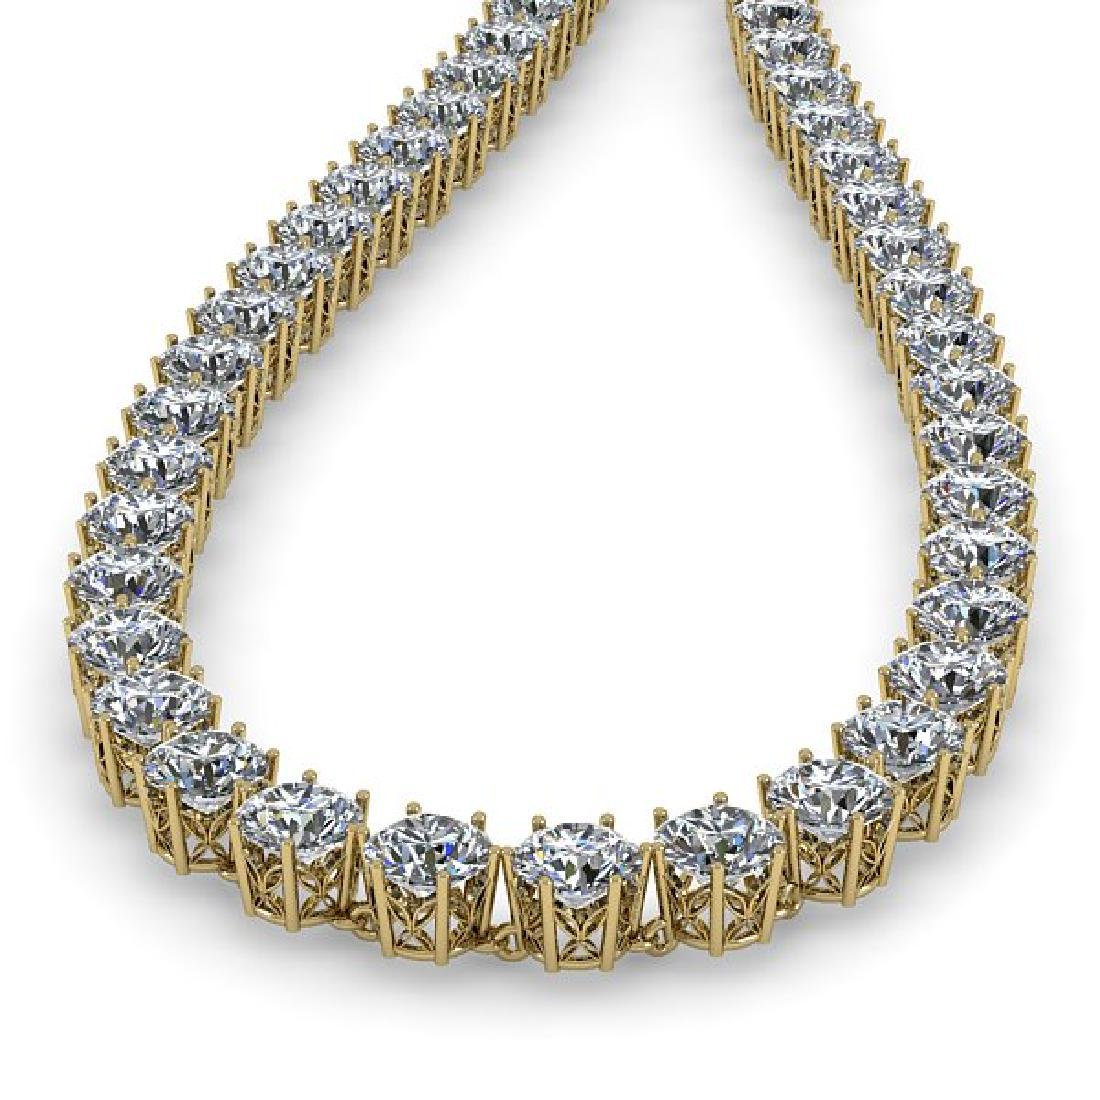 39 CTW SI Certified Diamond Necklace 14K Yellow Gold - 2